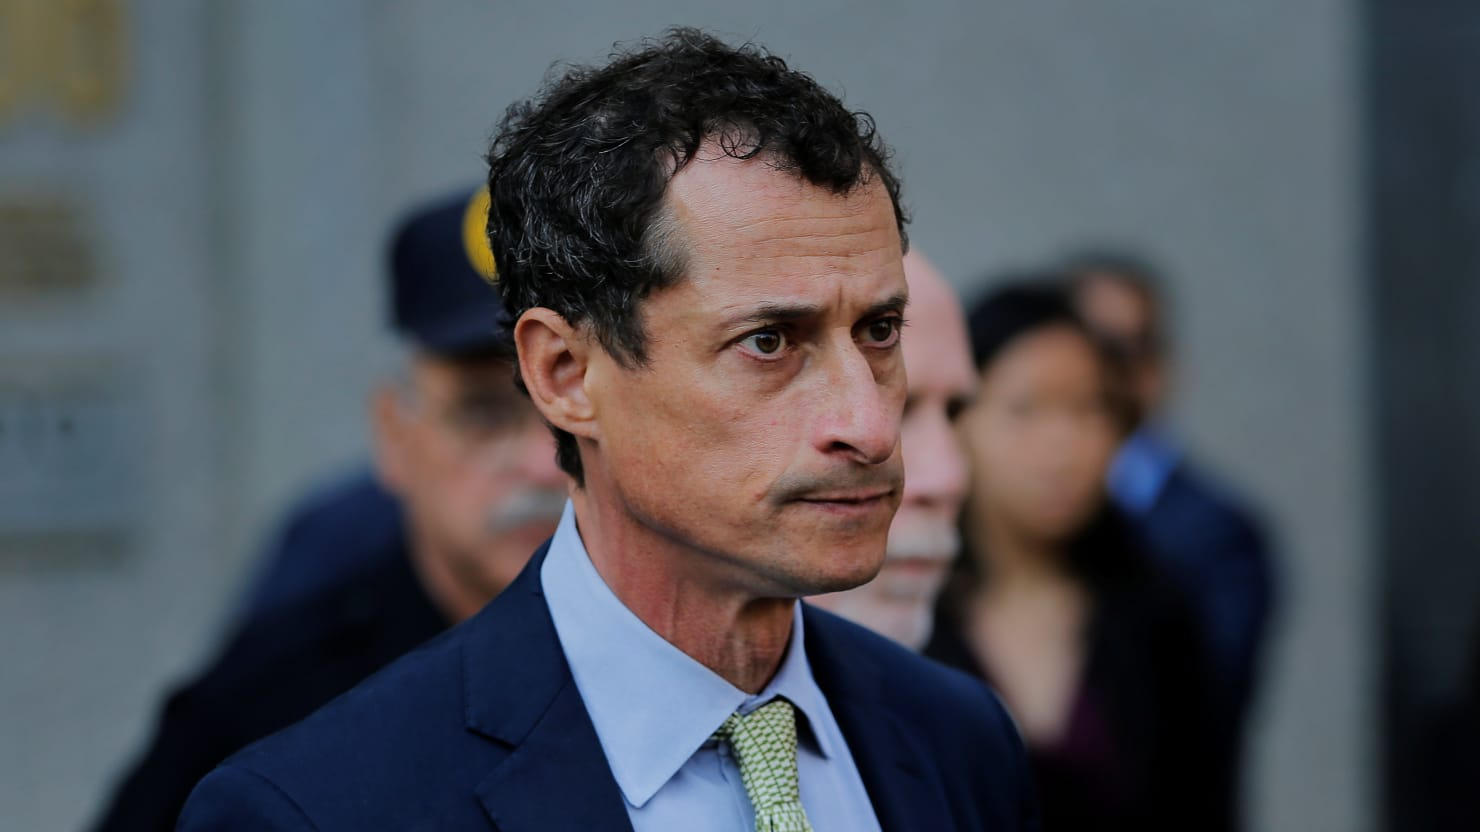 Anthony Weiner Designated as Level-One Sex Offender